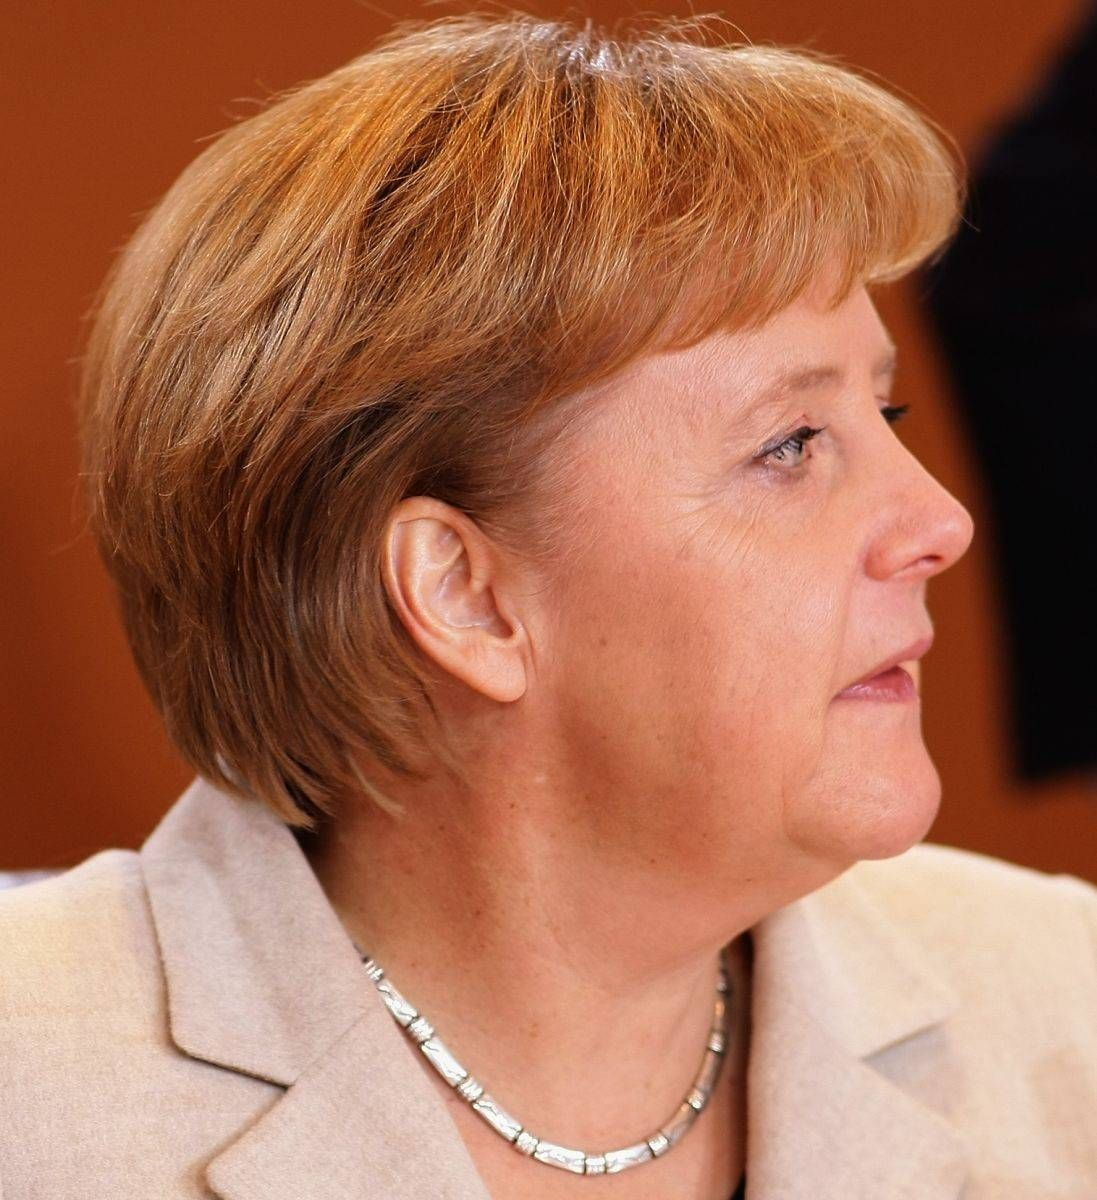 Angela Merkel - Famous and Powerful Women of the 2000-2009 Decade